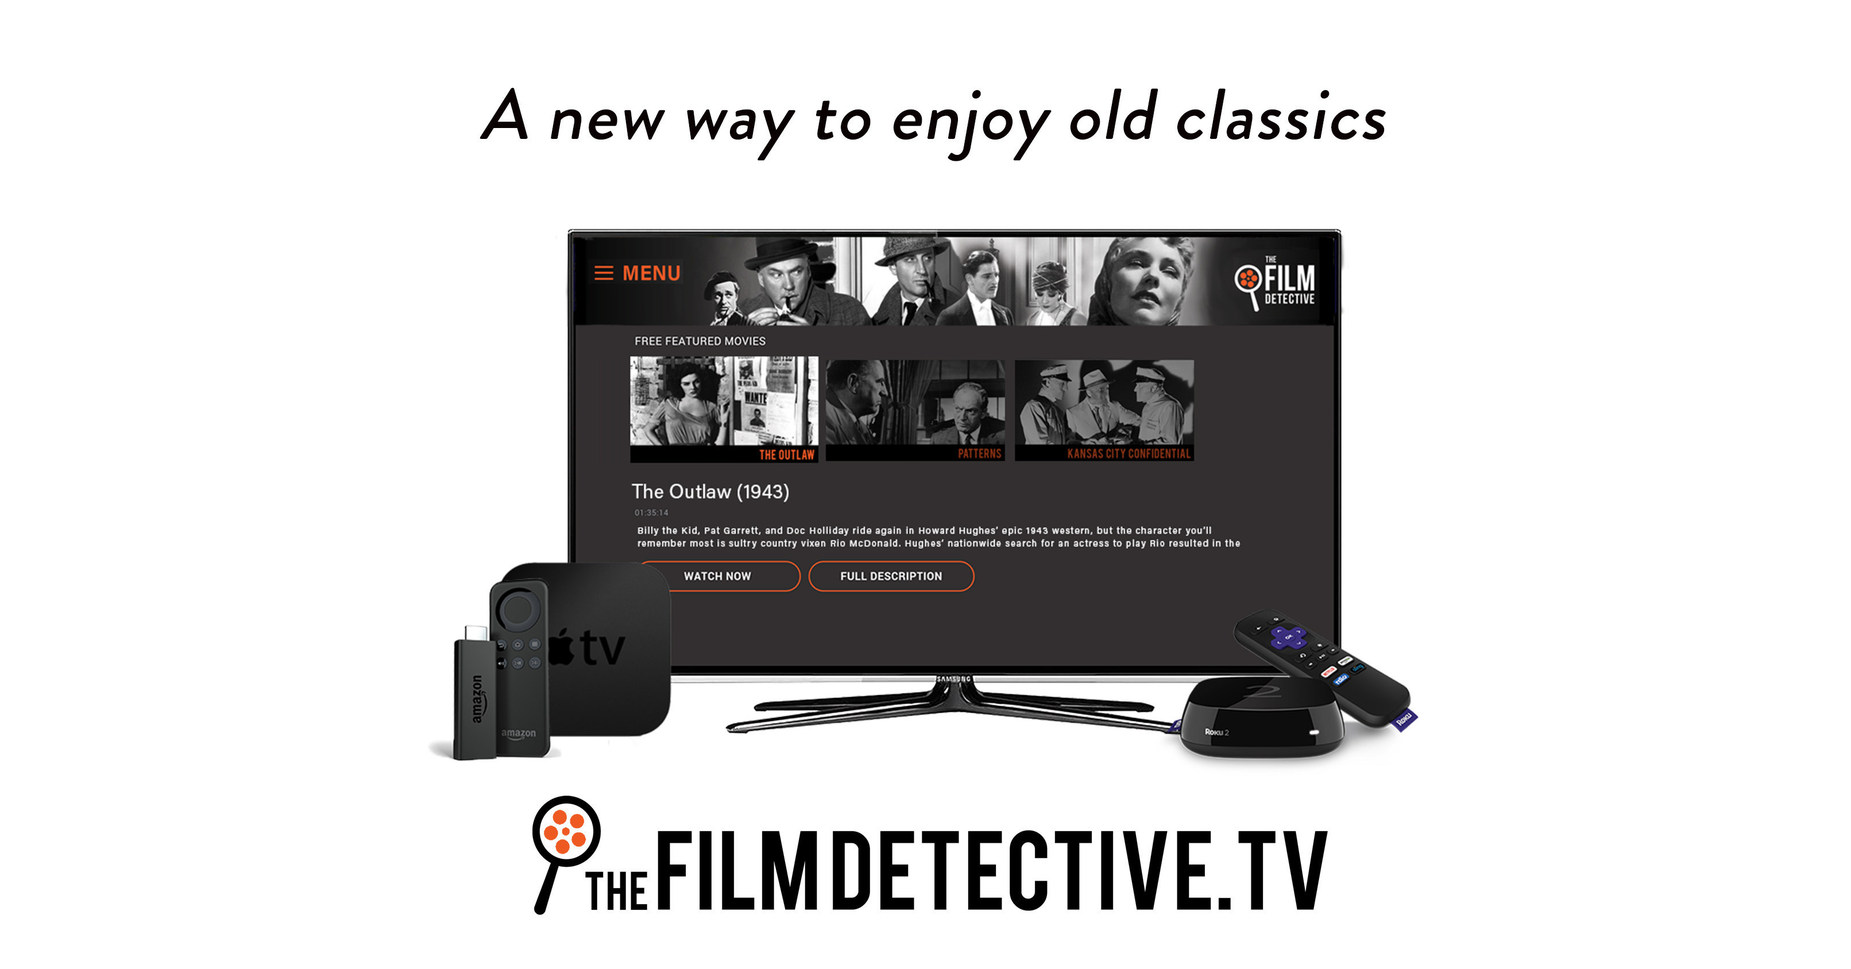 From Bollywood to Hollywood: The Film Detective Joins the